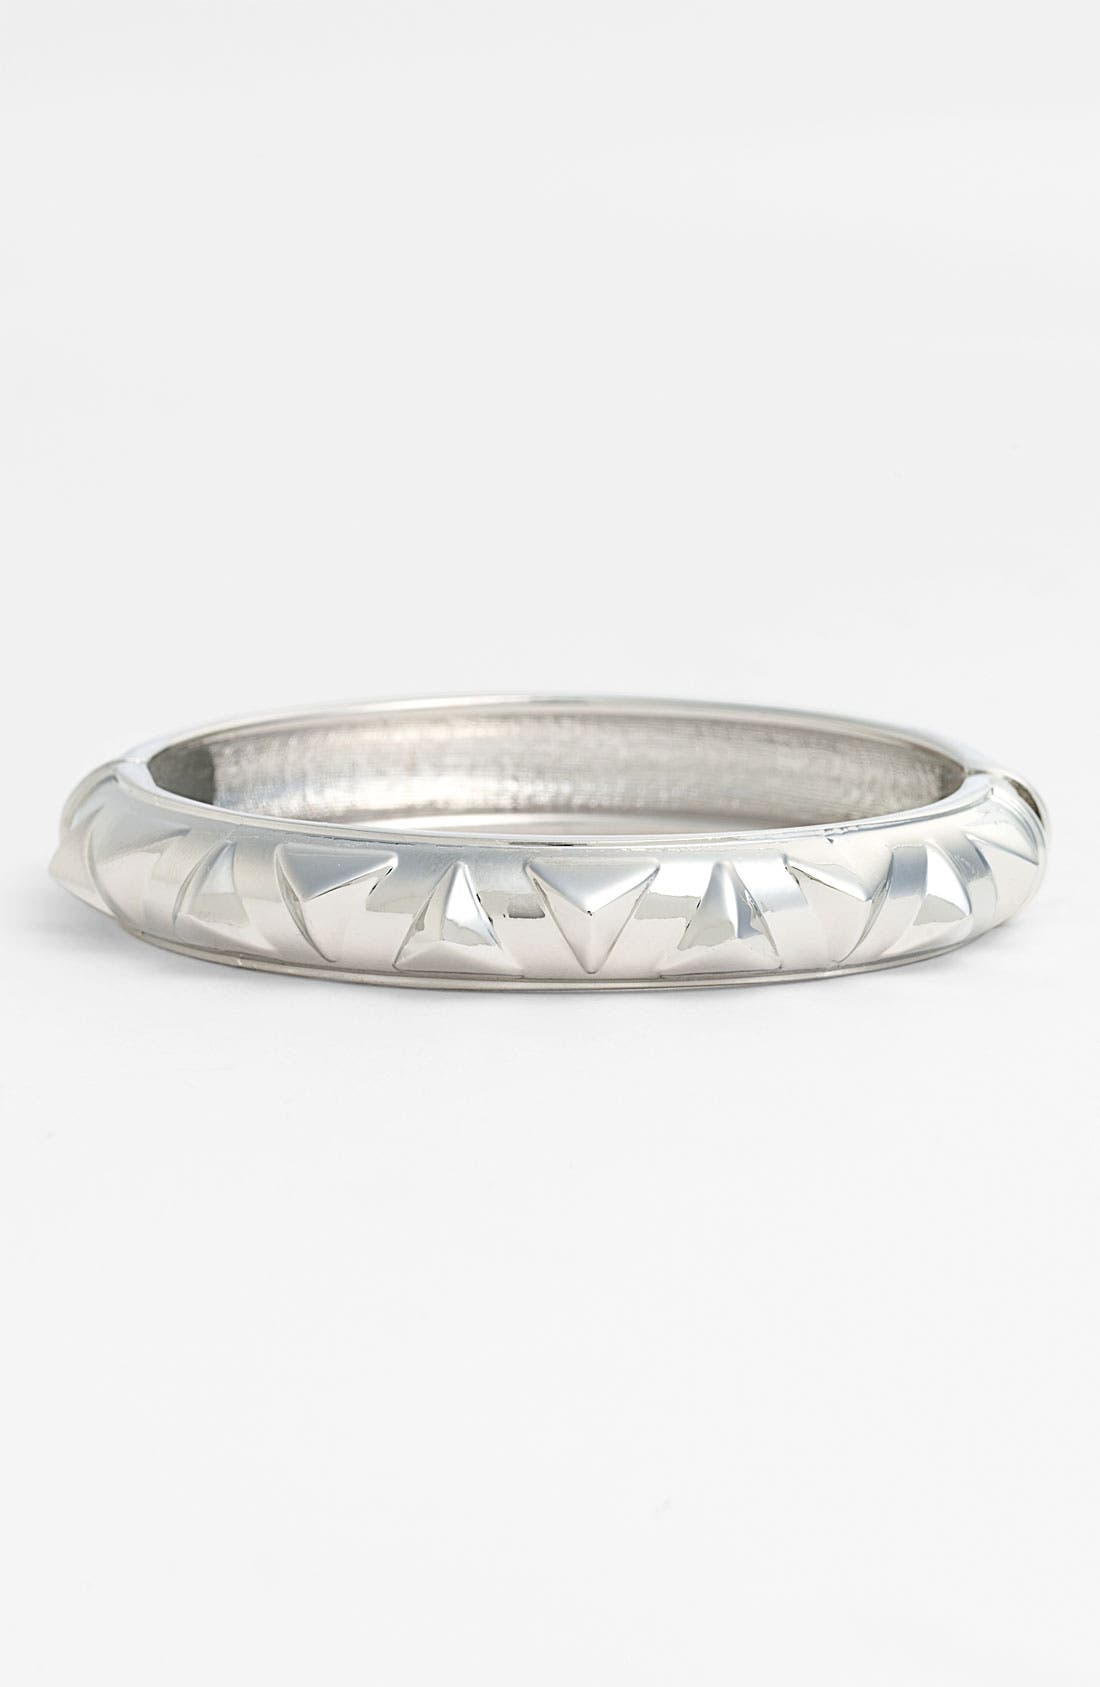 Alternate Image 1 Selected - Sequin Metal Pyramid Hinged Bangle